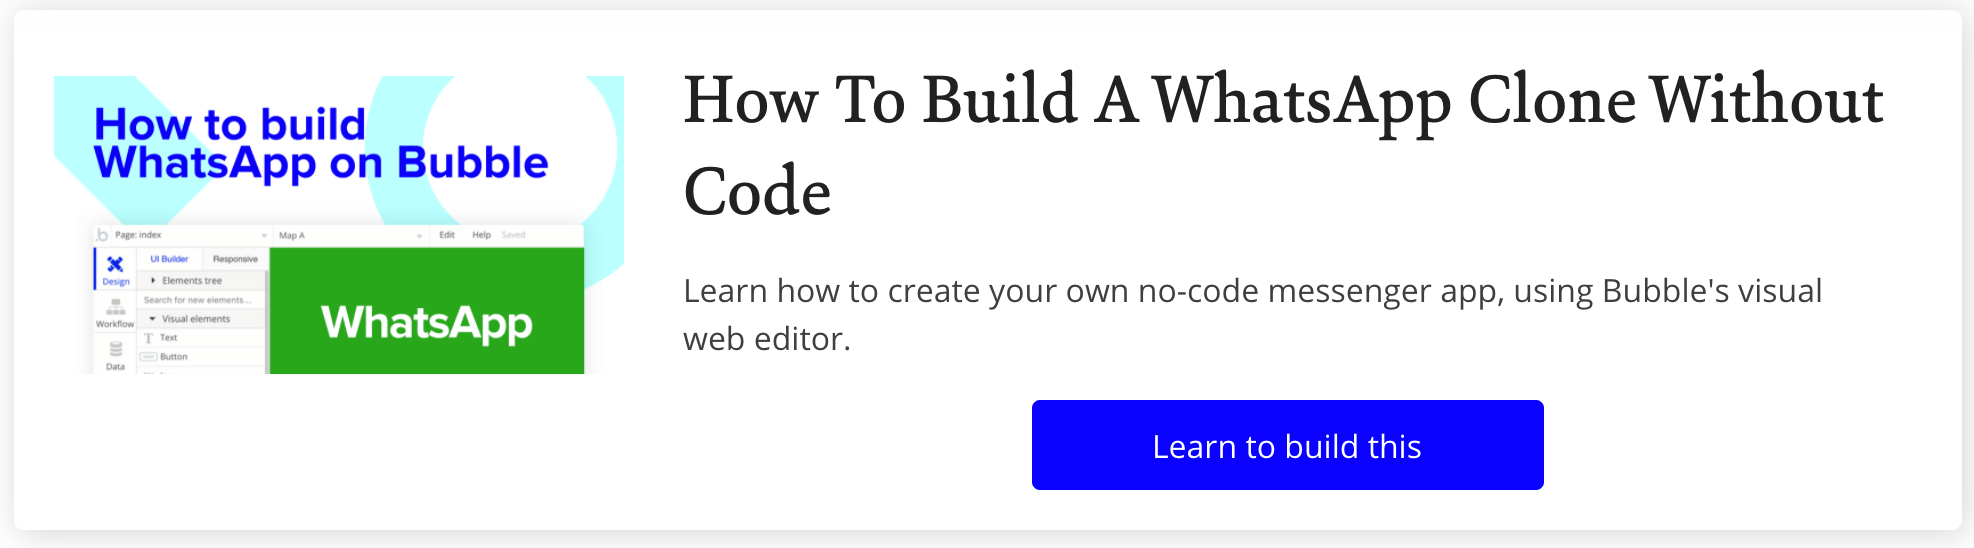 How To Build Whatsapp in Bubble with No Code Tutorial